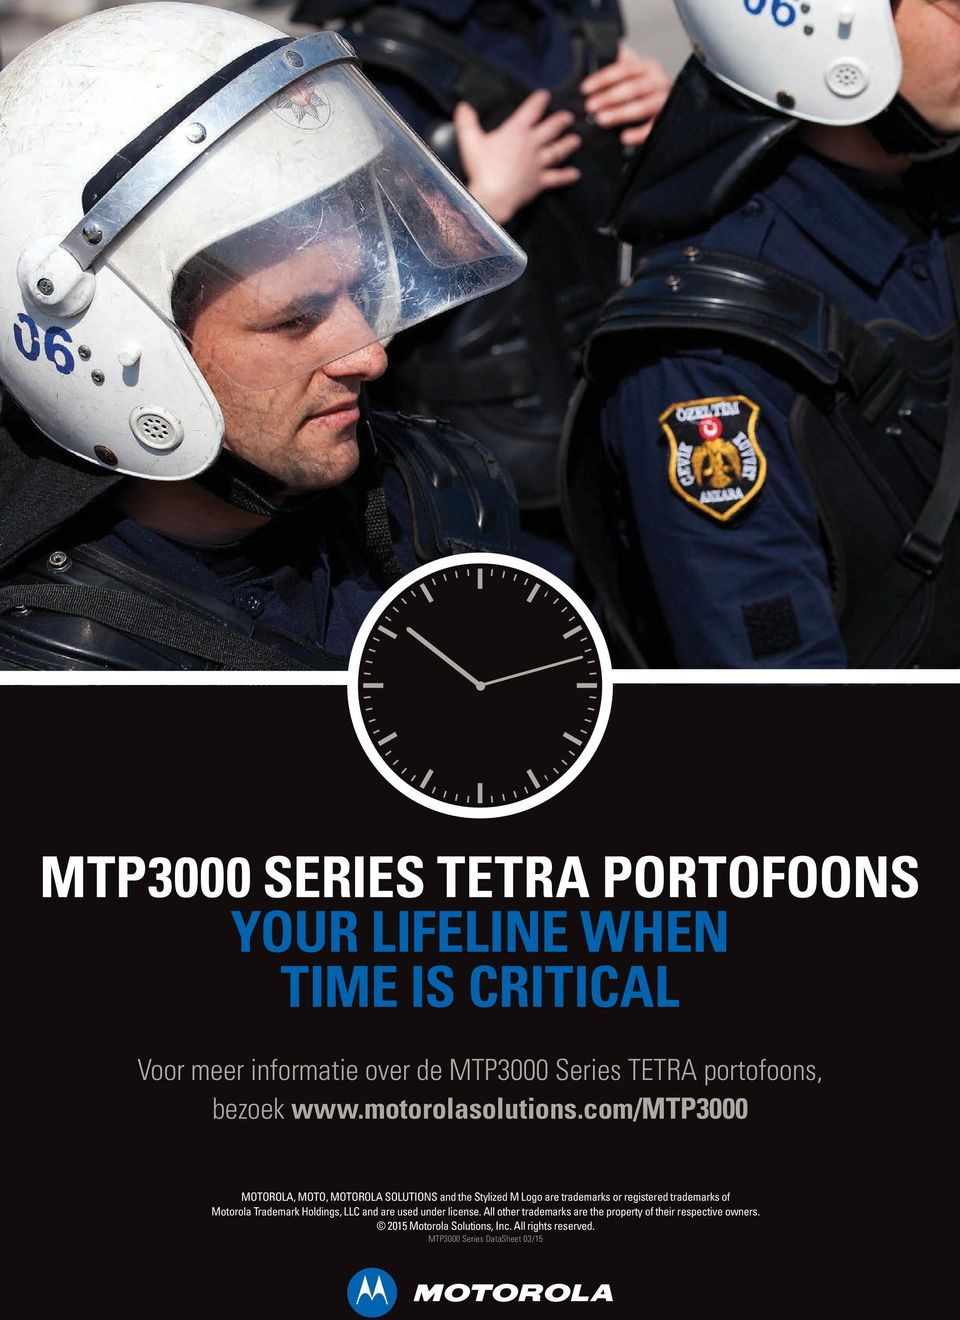 com/mtp3000 MOTOROLA, MOTO, MOTOROLA SOLUTIONS and the Stylized M Logo are trademarks or registered trademarks of